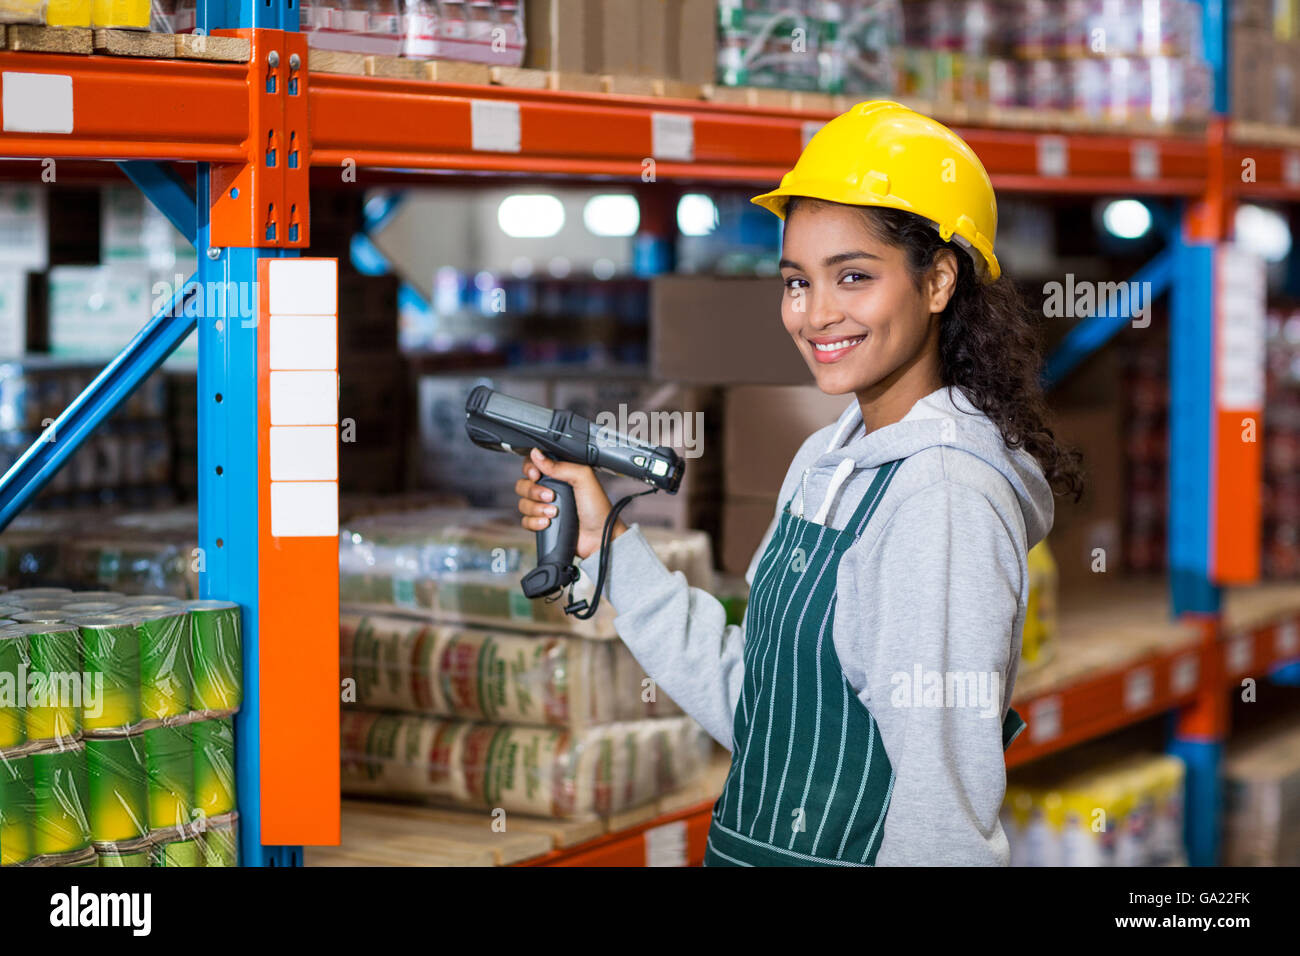 Female warehouse worker using digital equipment stock photo female warehouse worker using digital equipment sciox Choice Image